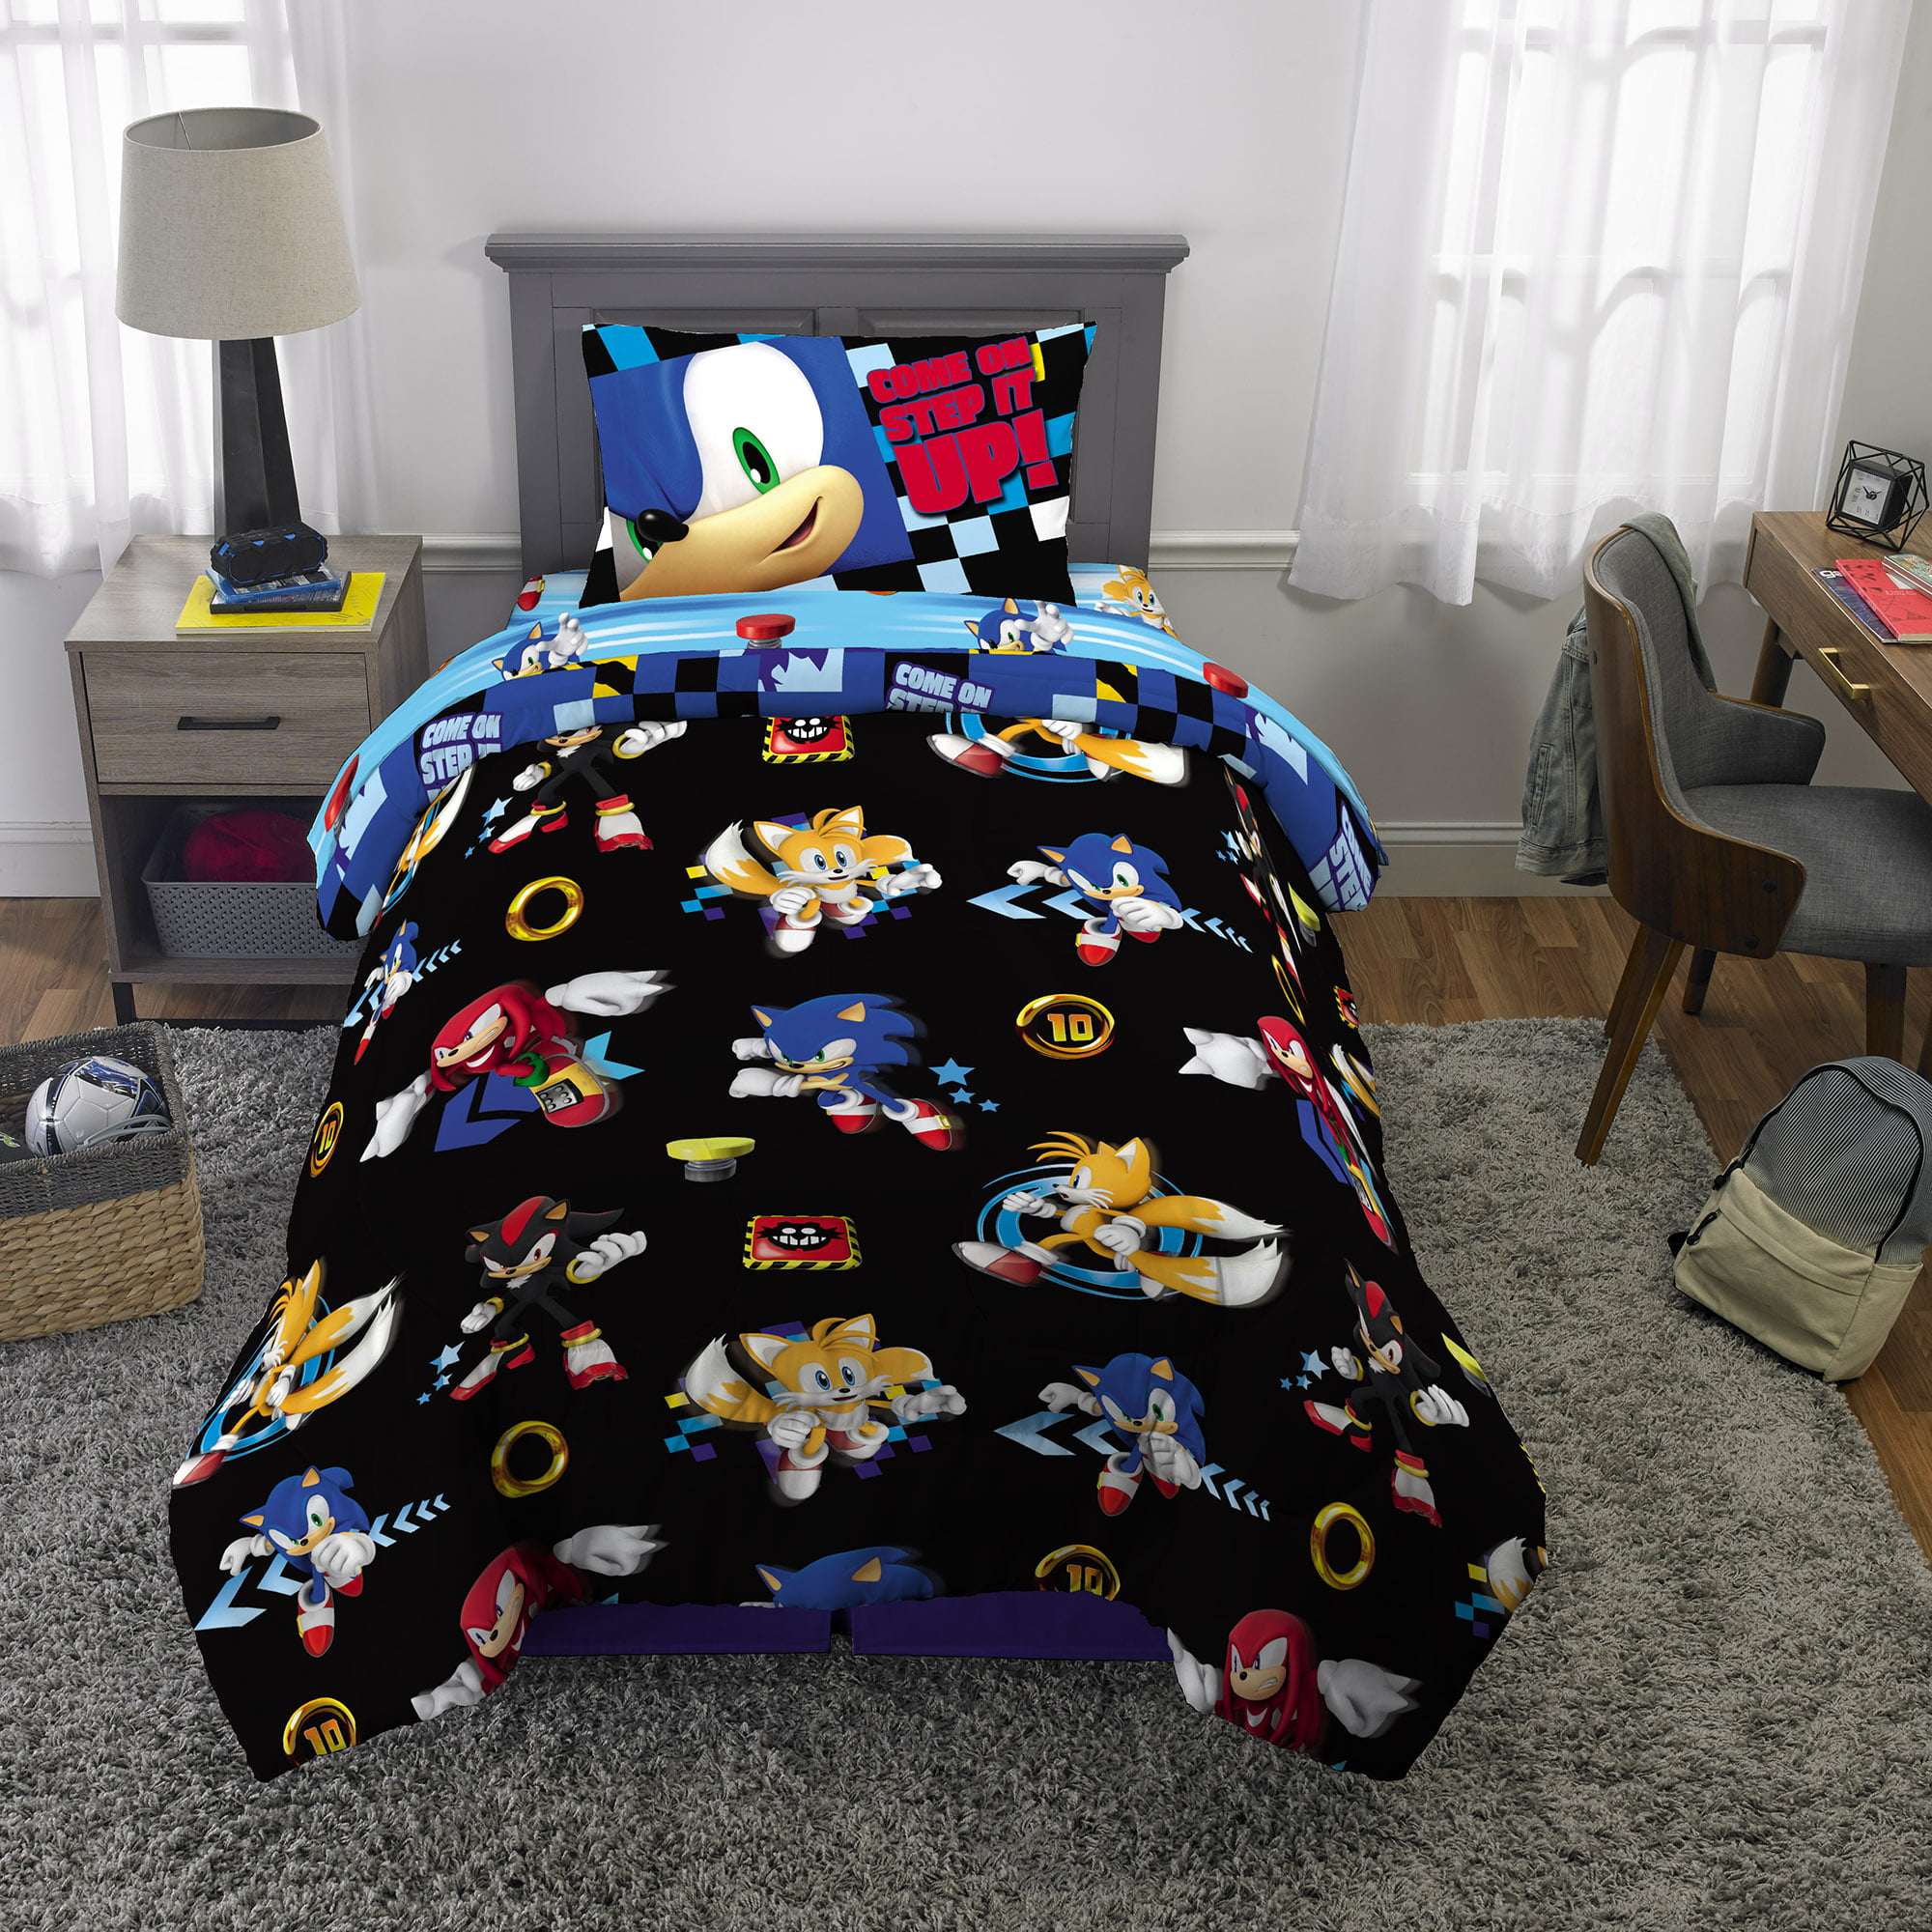 Sonic The Hedgehog Kids Microfiber Bed In A Bag Bedding Bundle Set Comforter And Sheets Black Walmart Com Walmart Com